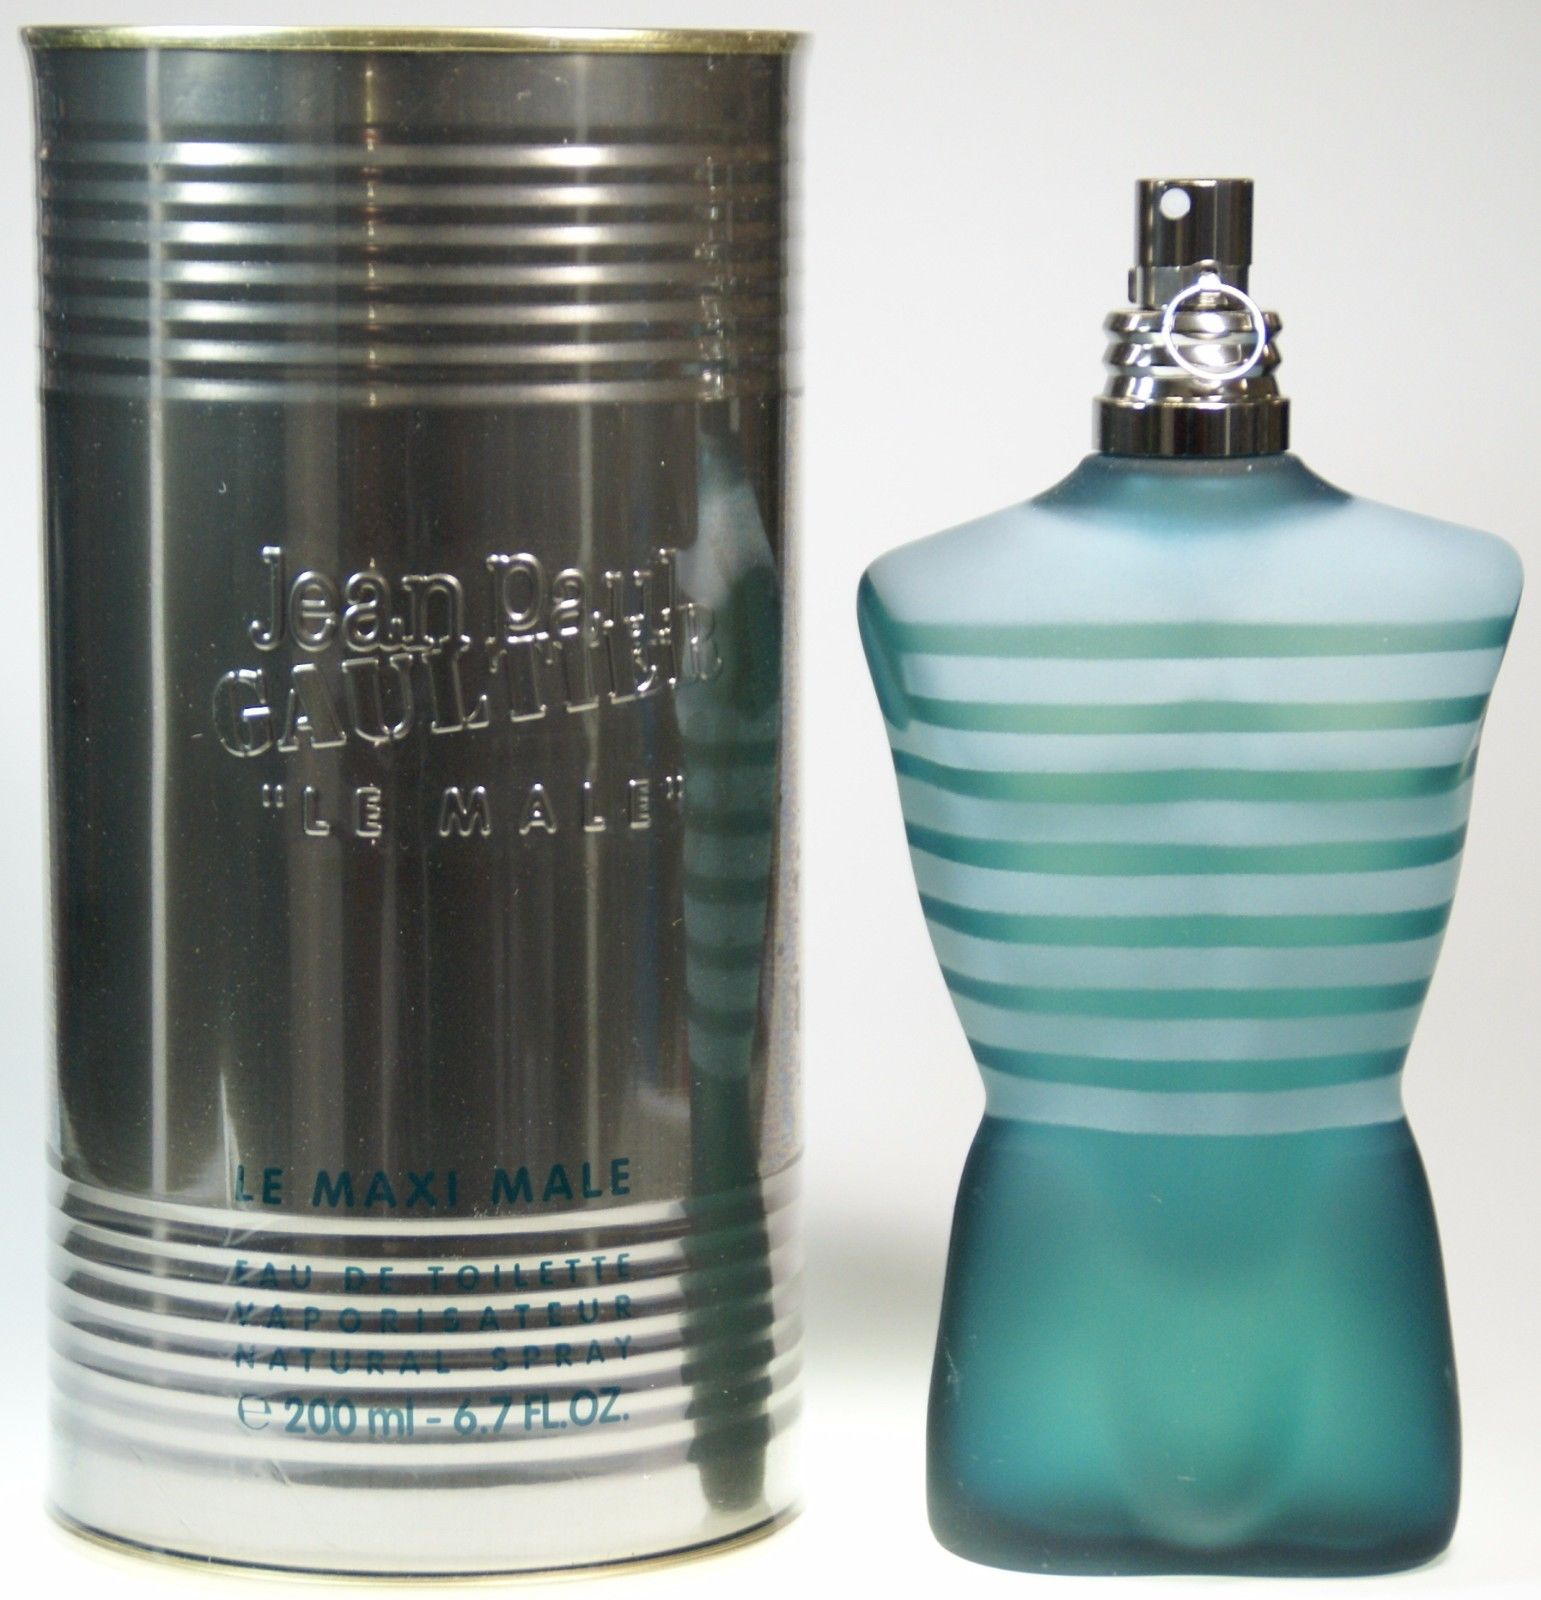 Jean Paul Gaultier Le Male EDT 200 ml Eau de Toilette Spray NEU MAXI XXL